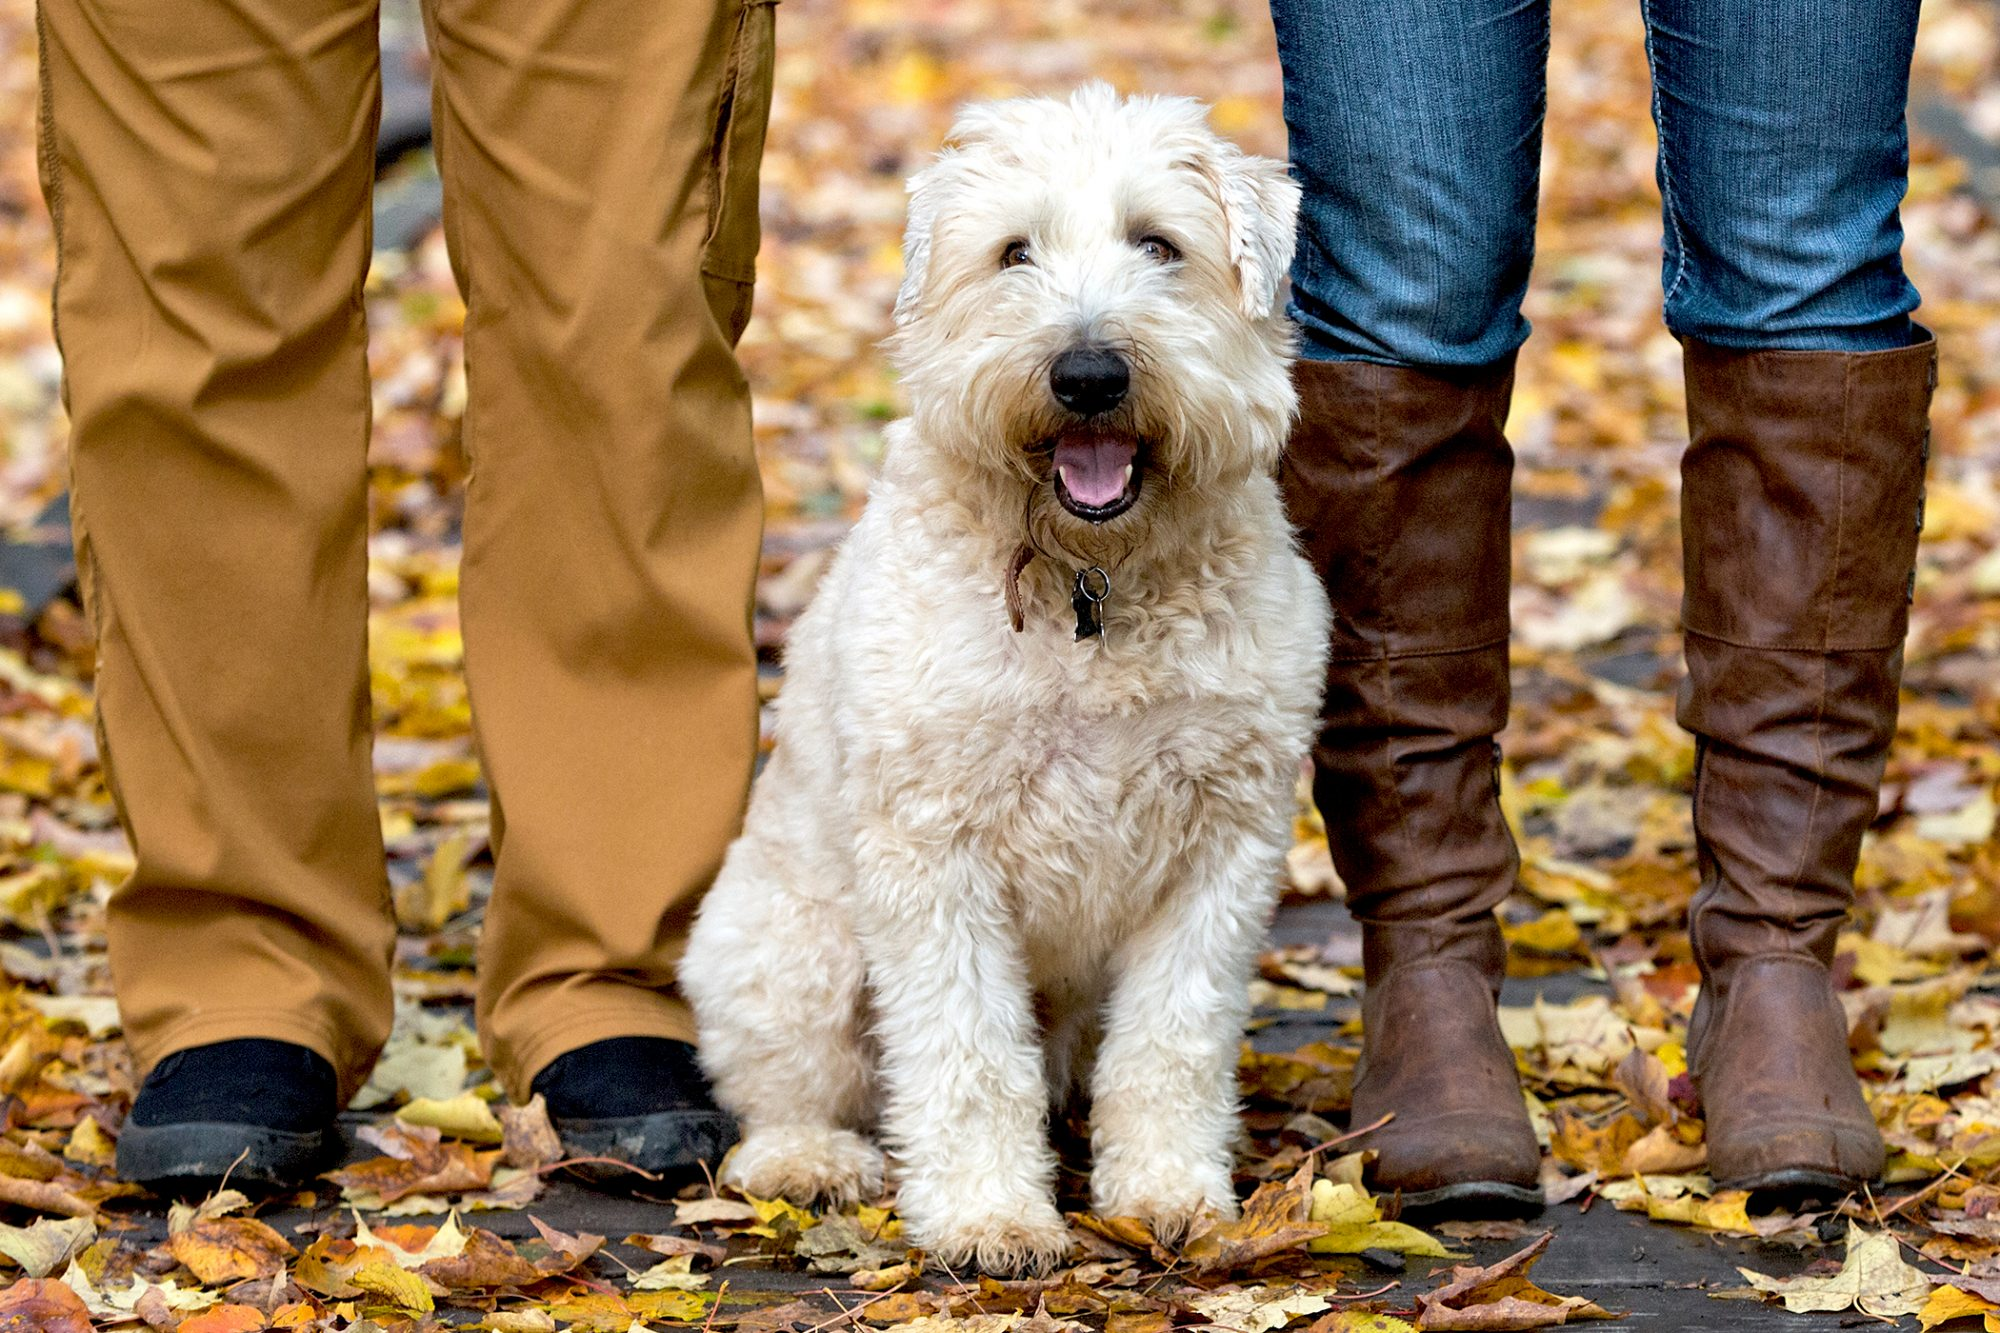 Blonde soft-coated wheaten terrier sits between two humans